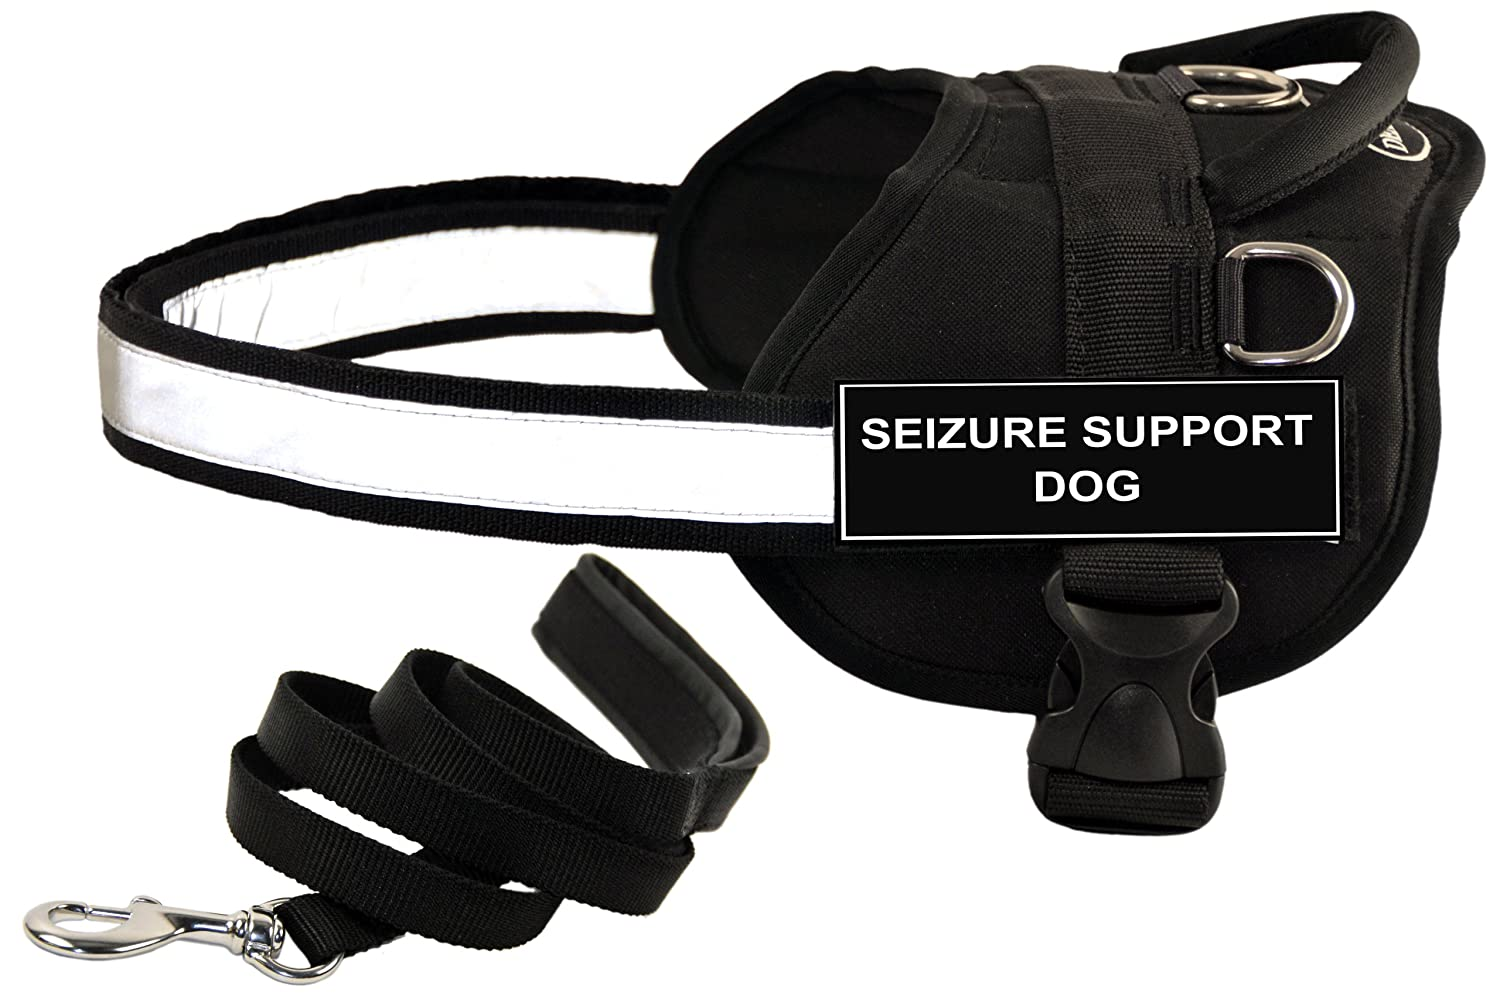 Dean and Tyler Bundle One DT Works Harness, Seizure Support Dog, XXSmall (18, 21) + One Padded Puppy Leash, 6-Feet Stainless Steel Snap, Black